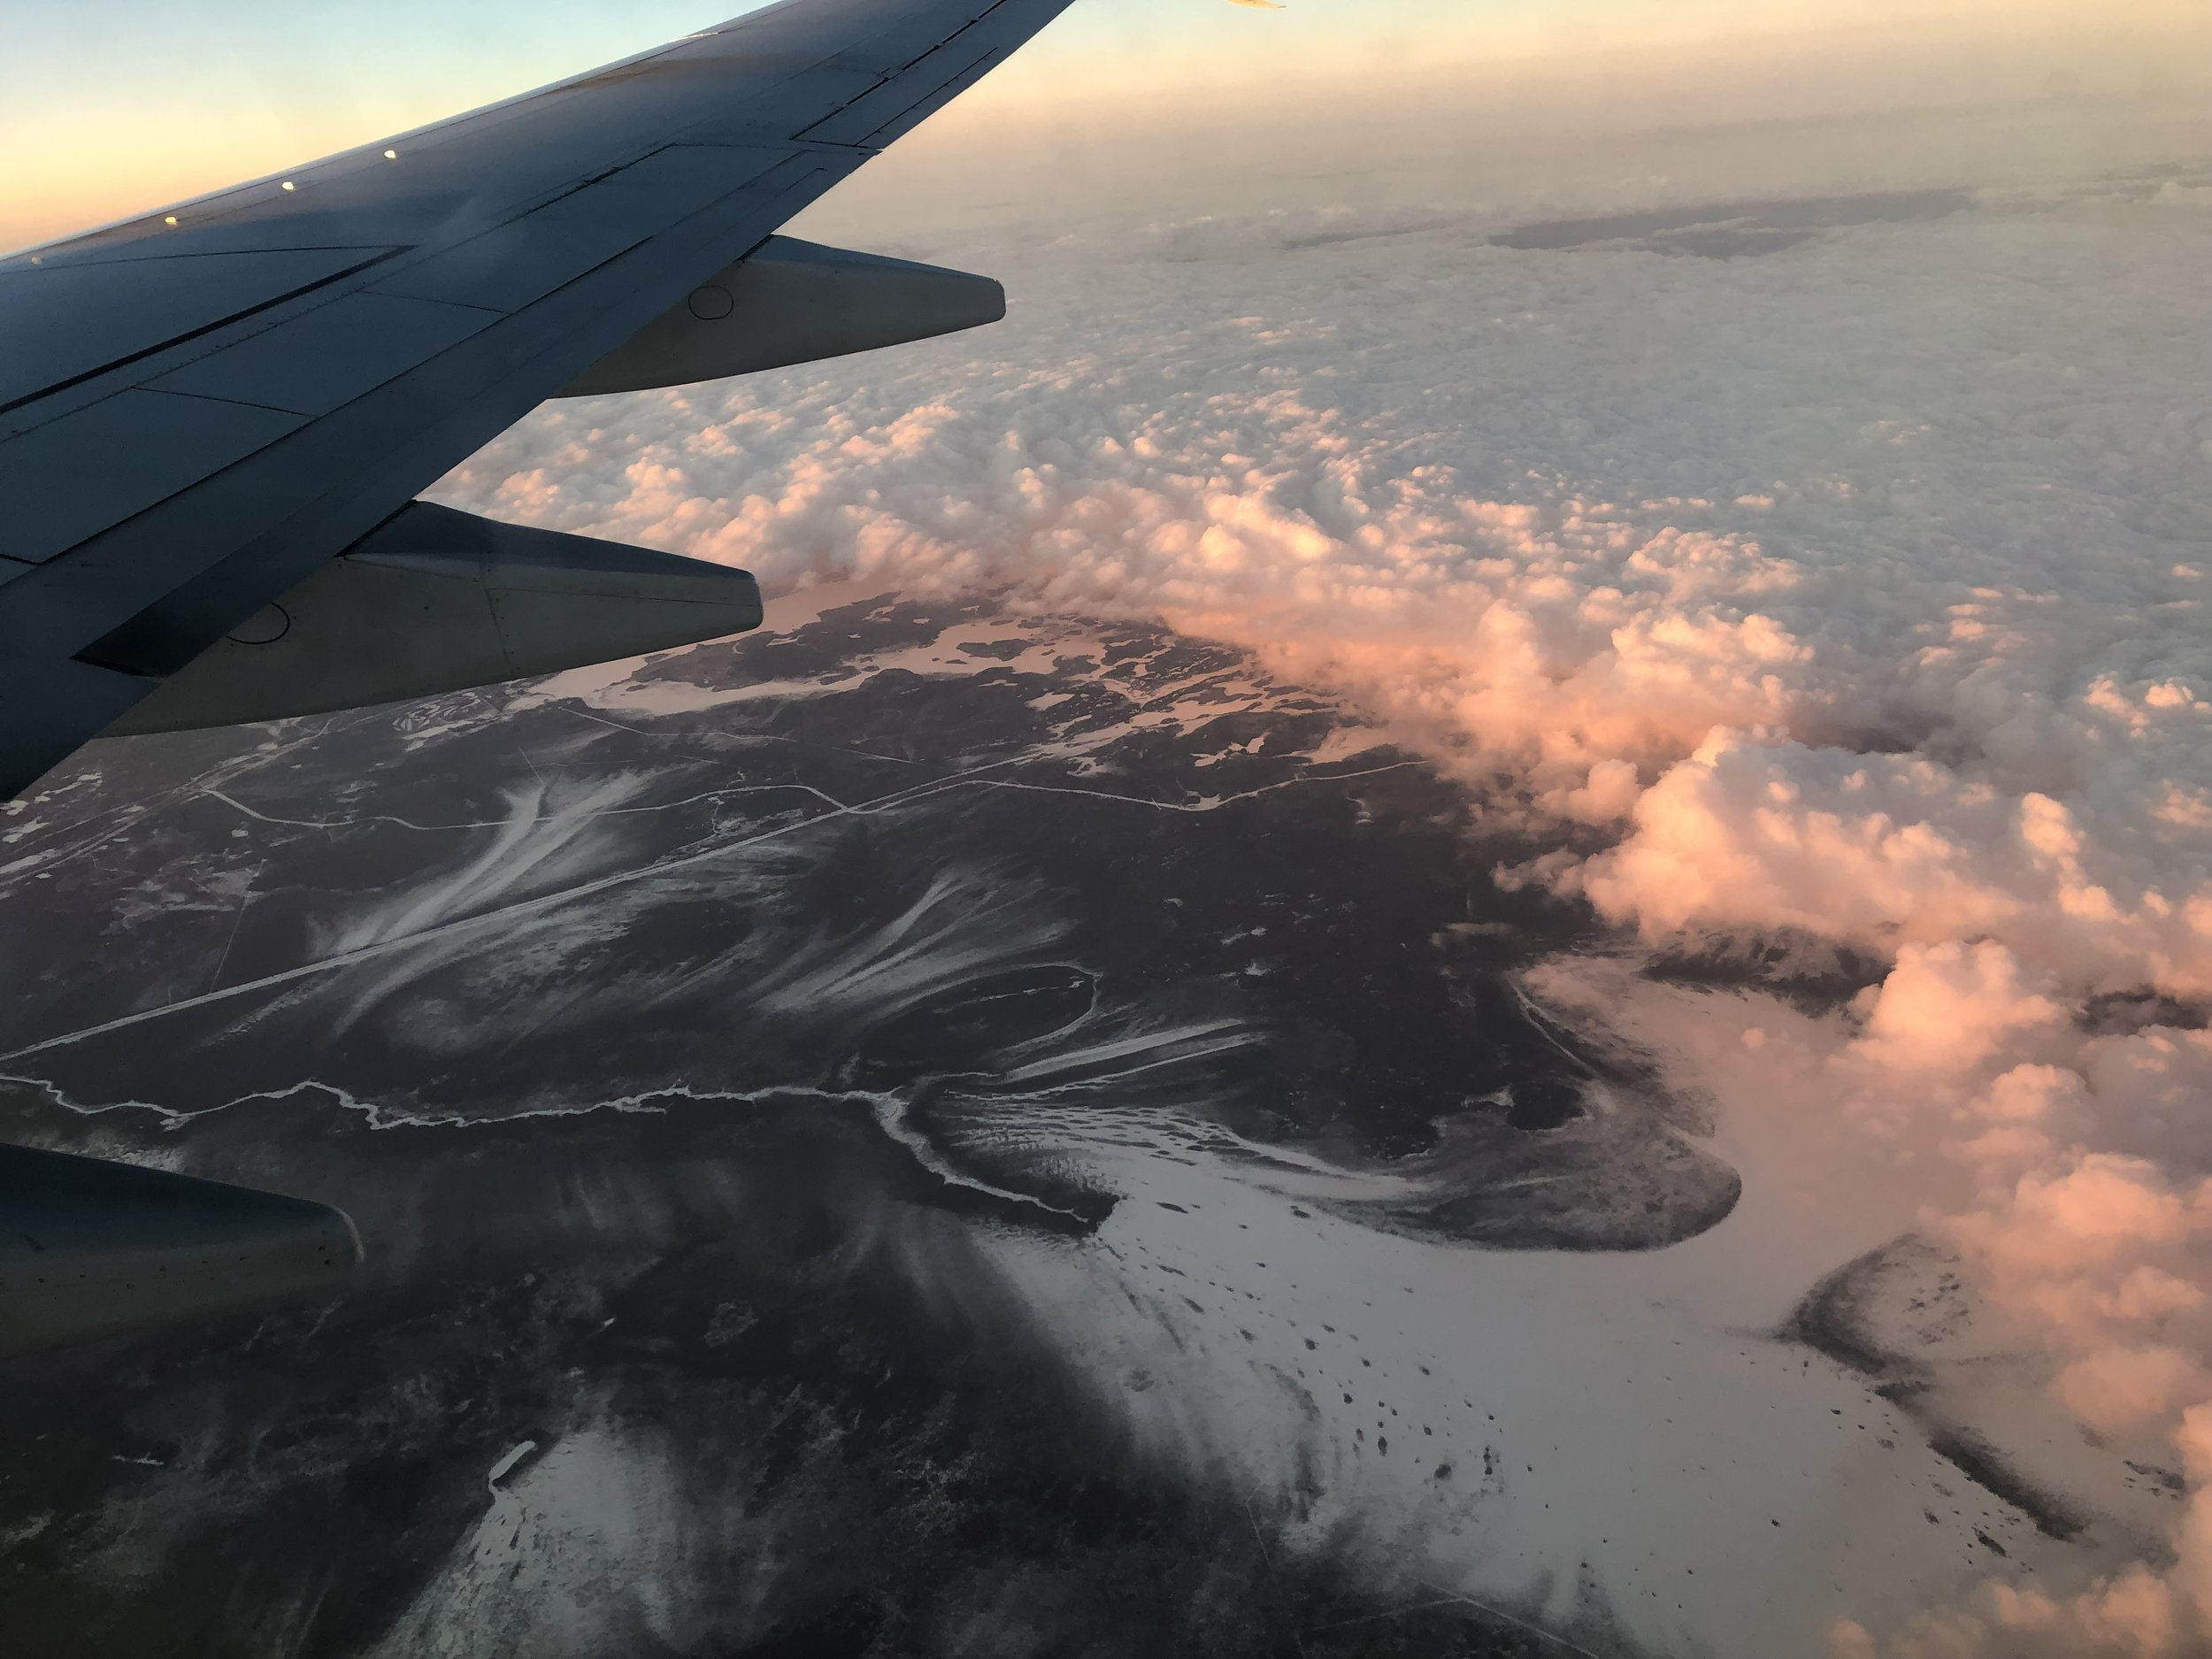 On the way to Winnipeg - March 2019